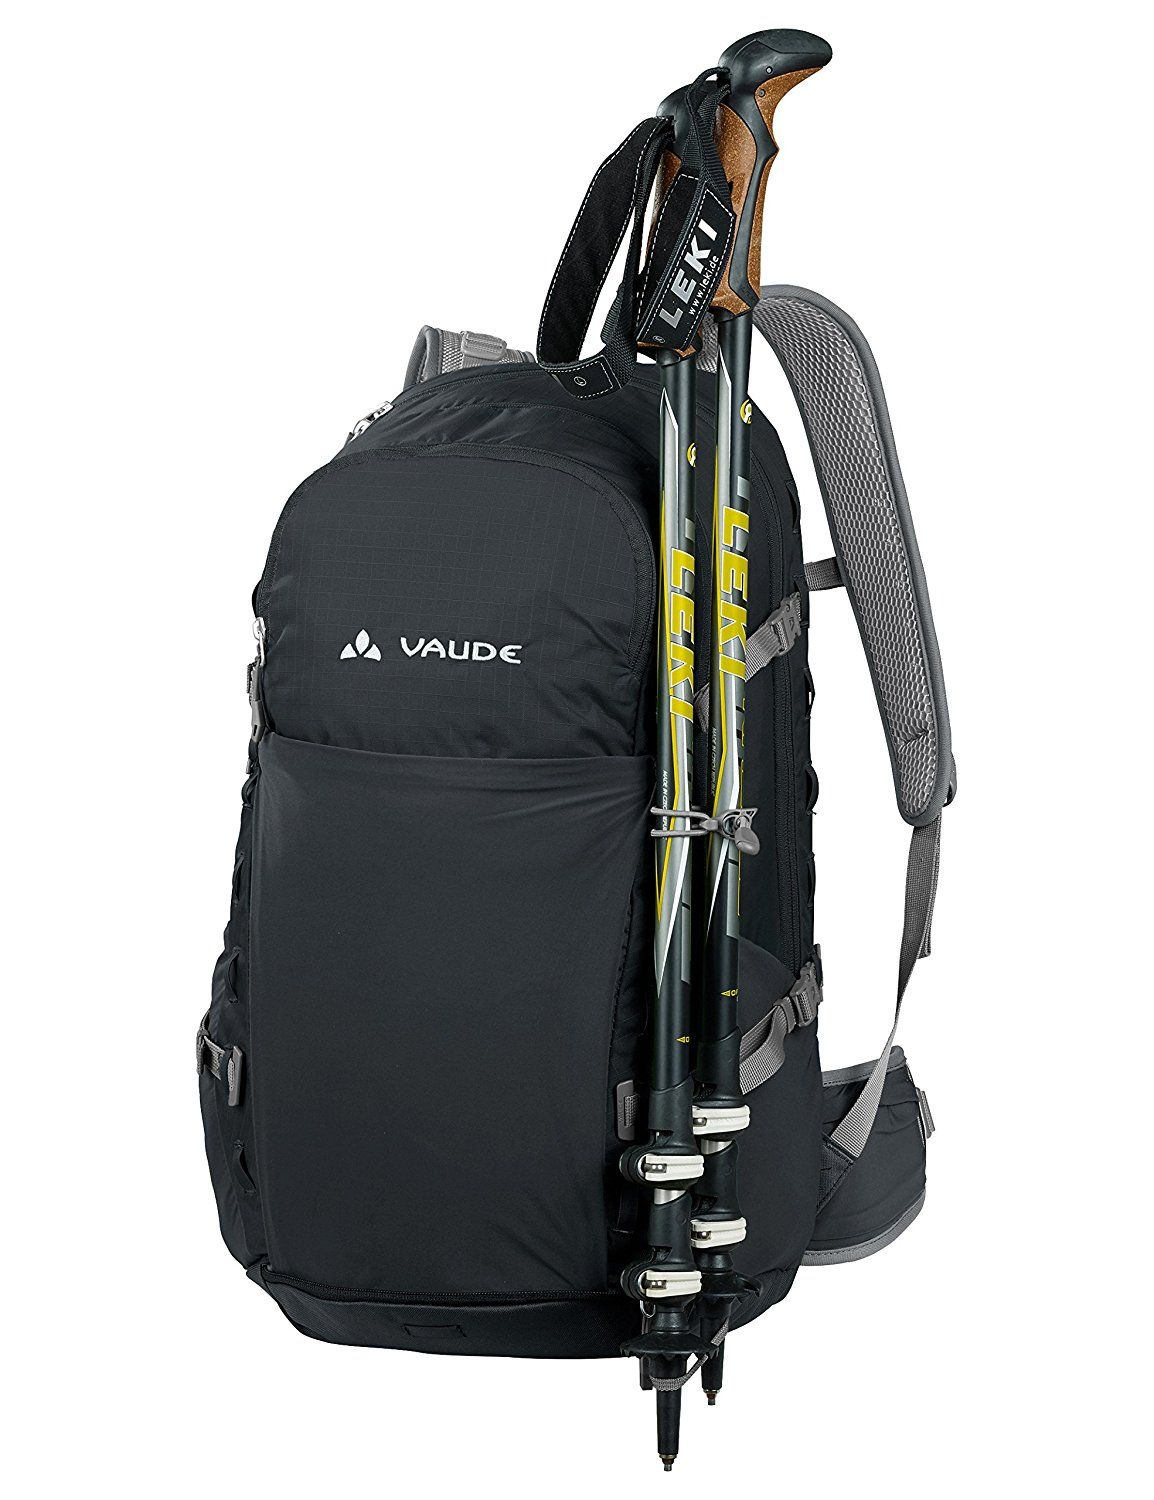 7f514444e42ca Vaude Varyd 22 Daypack     Check out this great image   Backpacking backpack